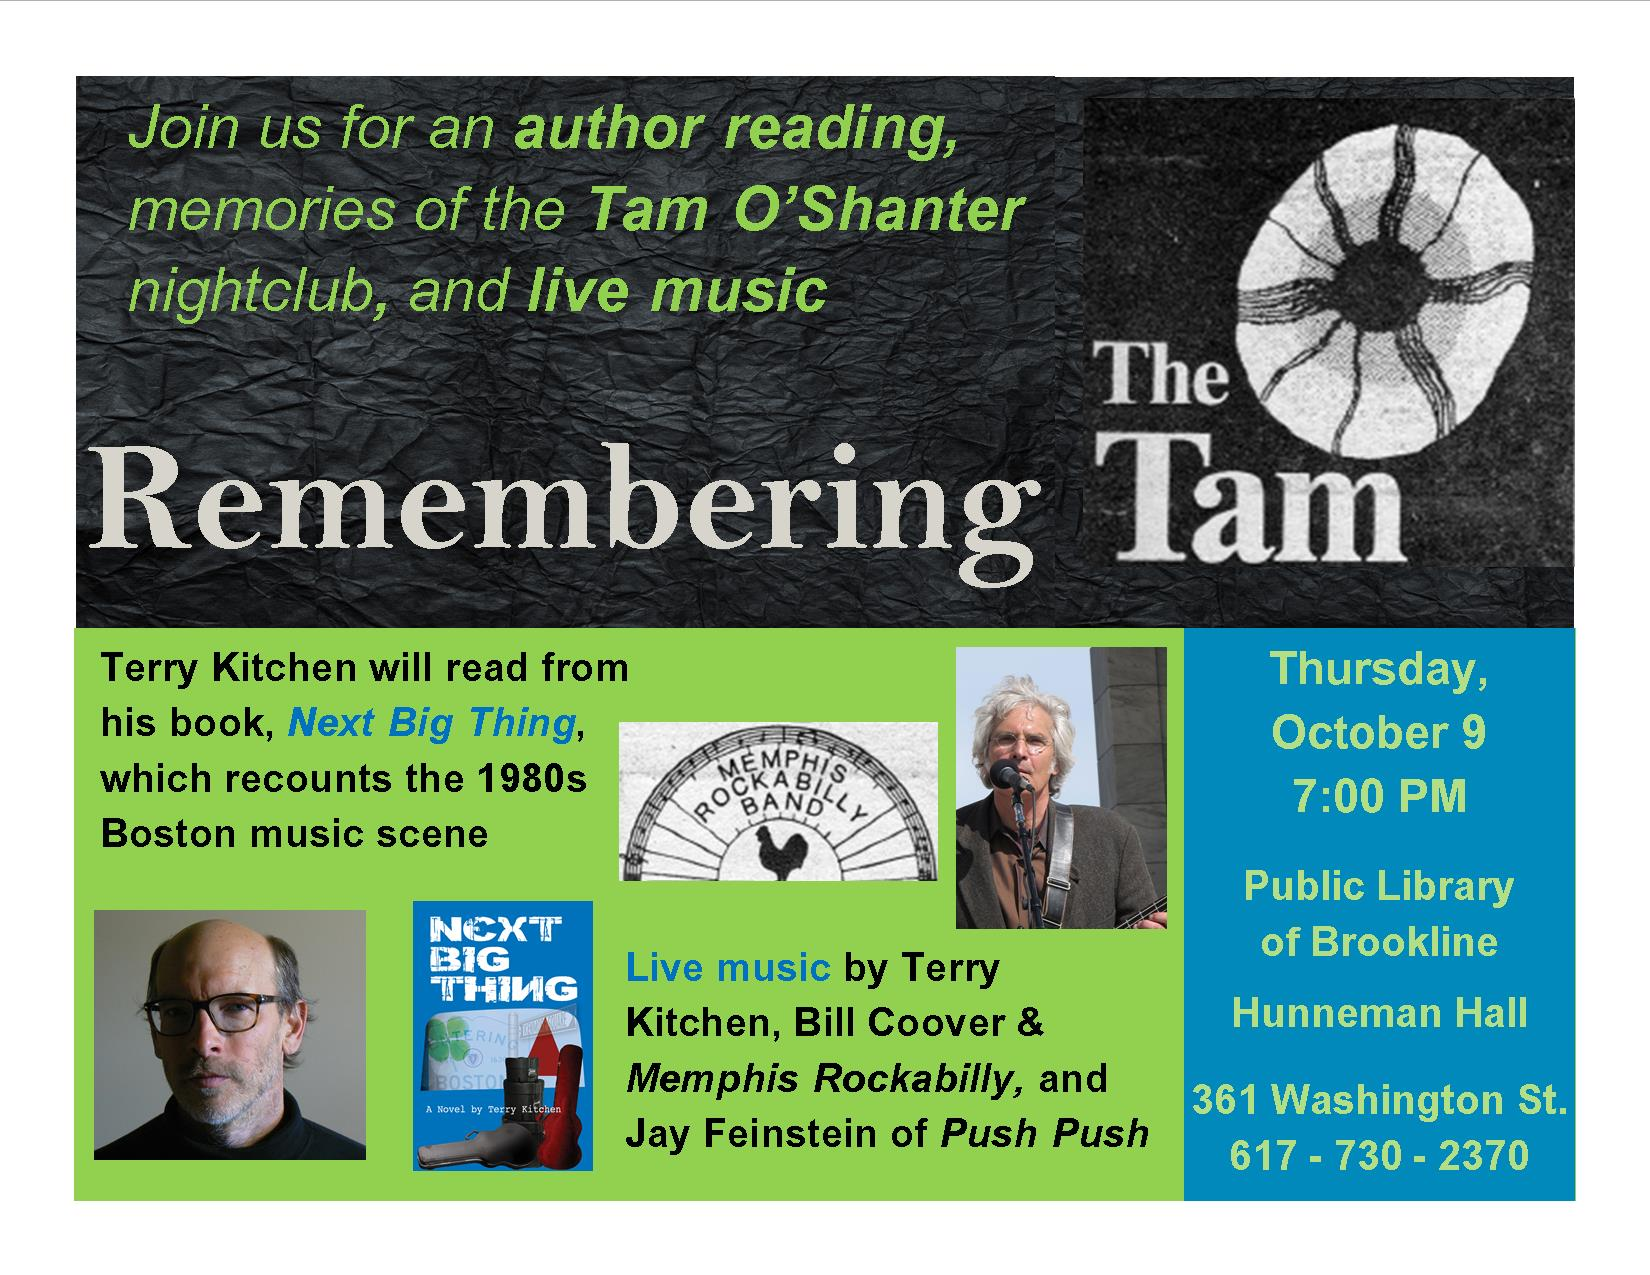 Remembering The Tam! with Terry Kitchen, Jay Feinstein, Memphis Rockabilly Band Oct. 9 at Brookline Public Library